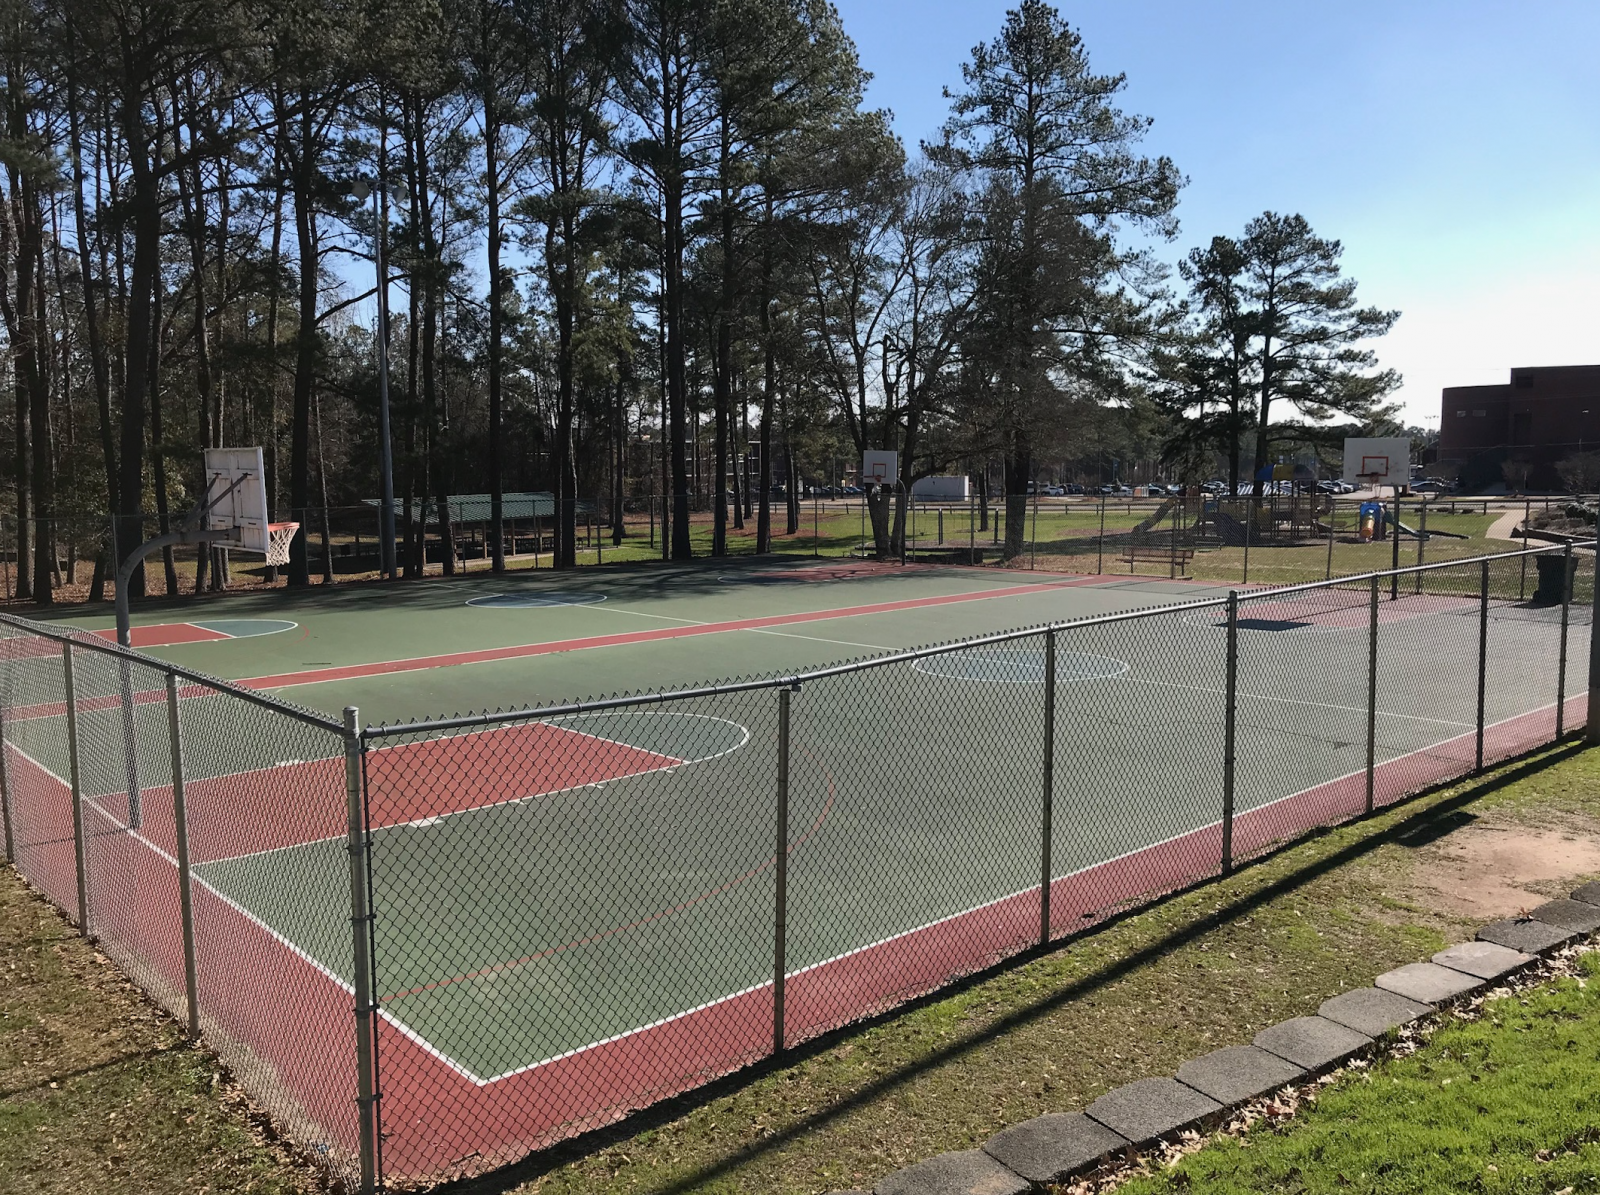 Seabrook Park Basketball Courts at Smith Recreation Center - Before Refurbishment